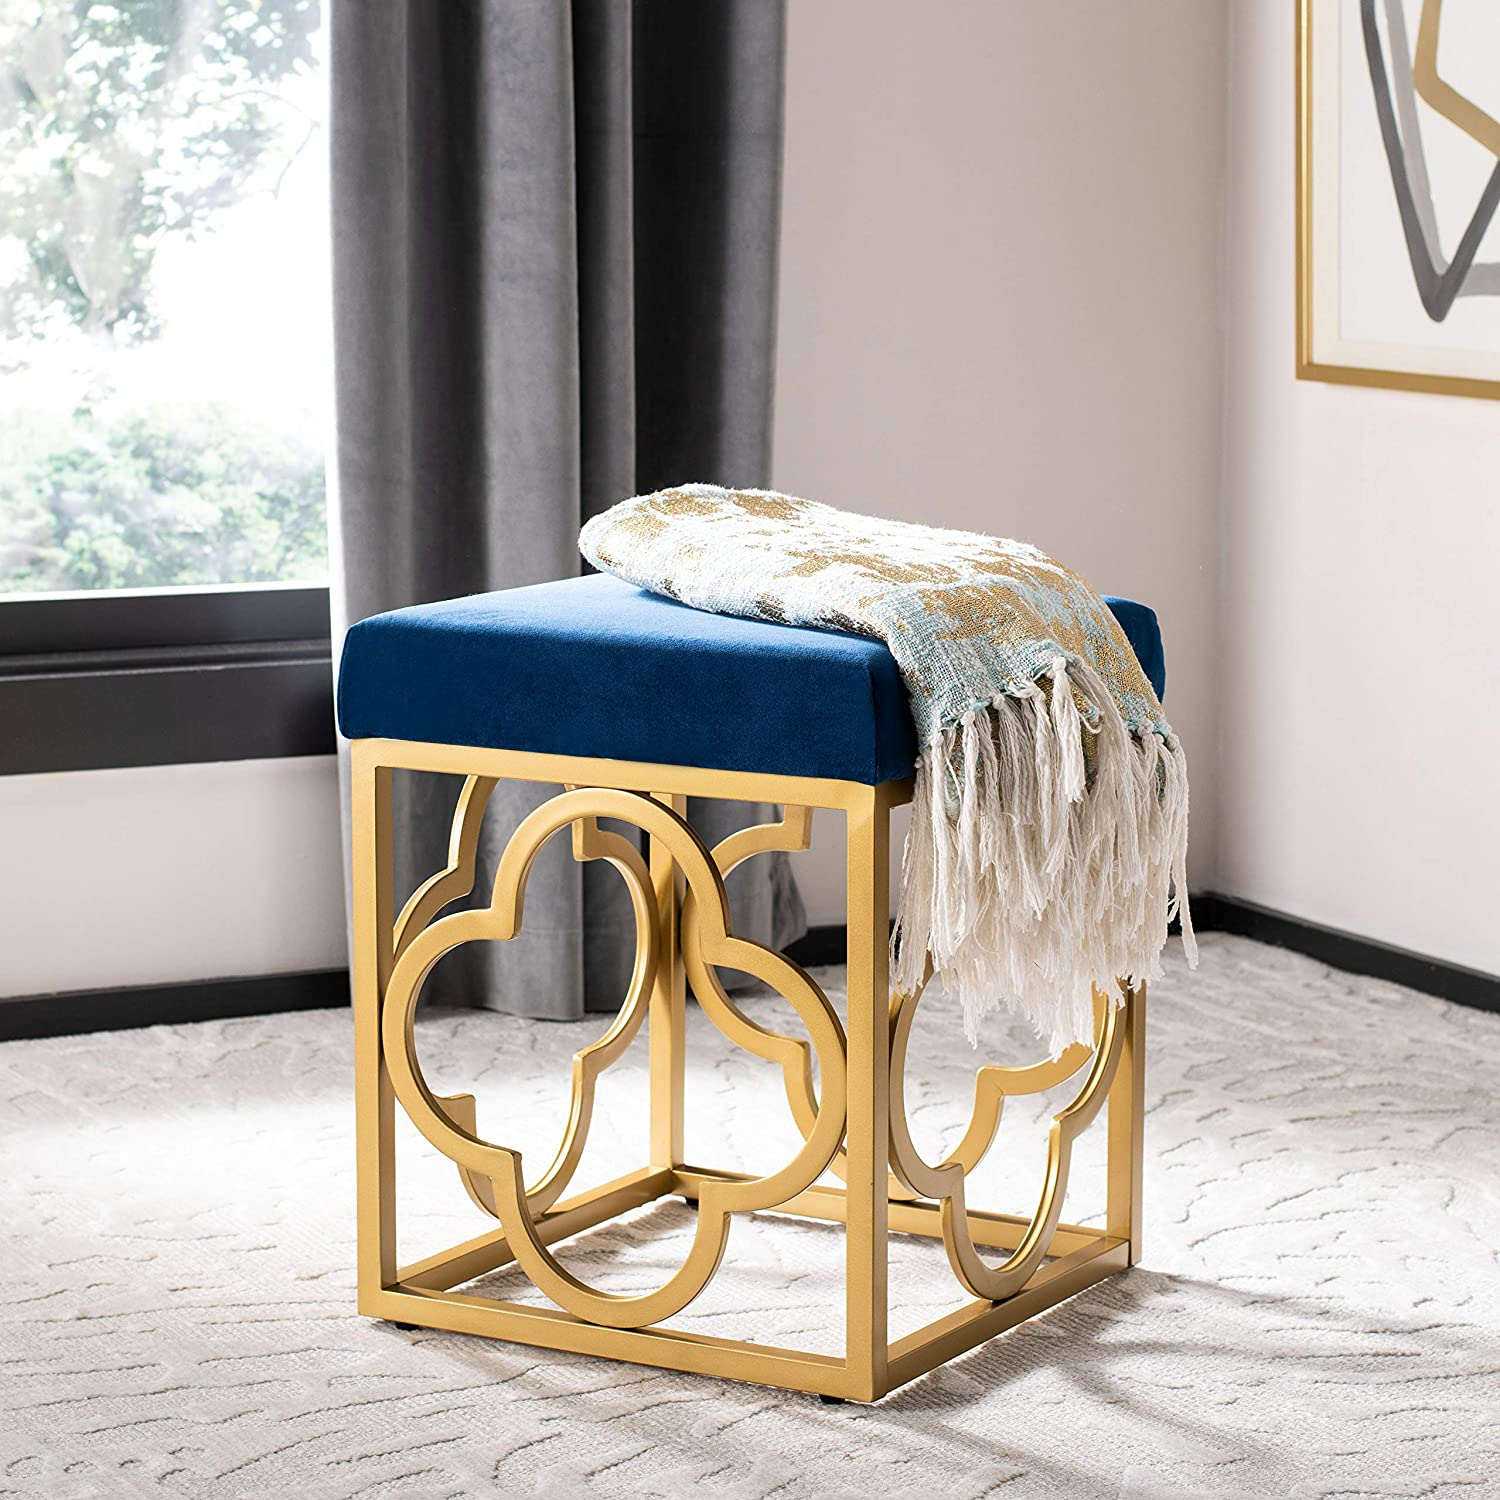 Safavieh Home Fleur Glam Blue Square Max 81% OFF Velvet Ottoman Courier shipping free shipping Gold Navy